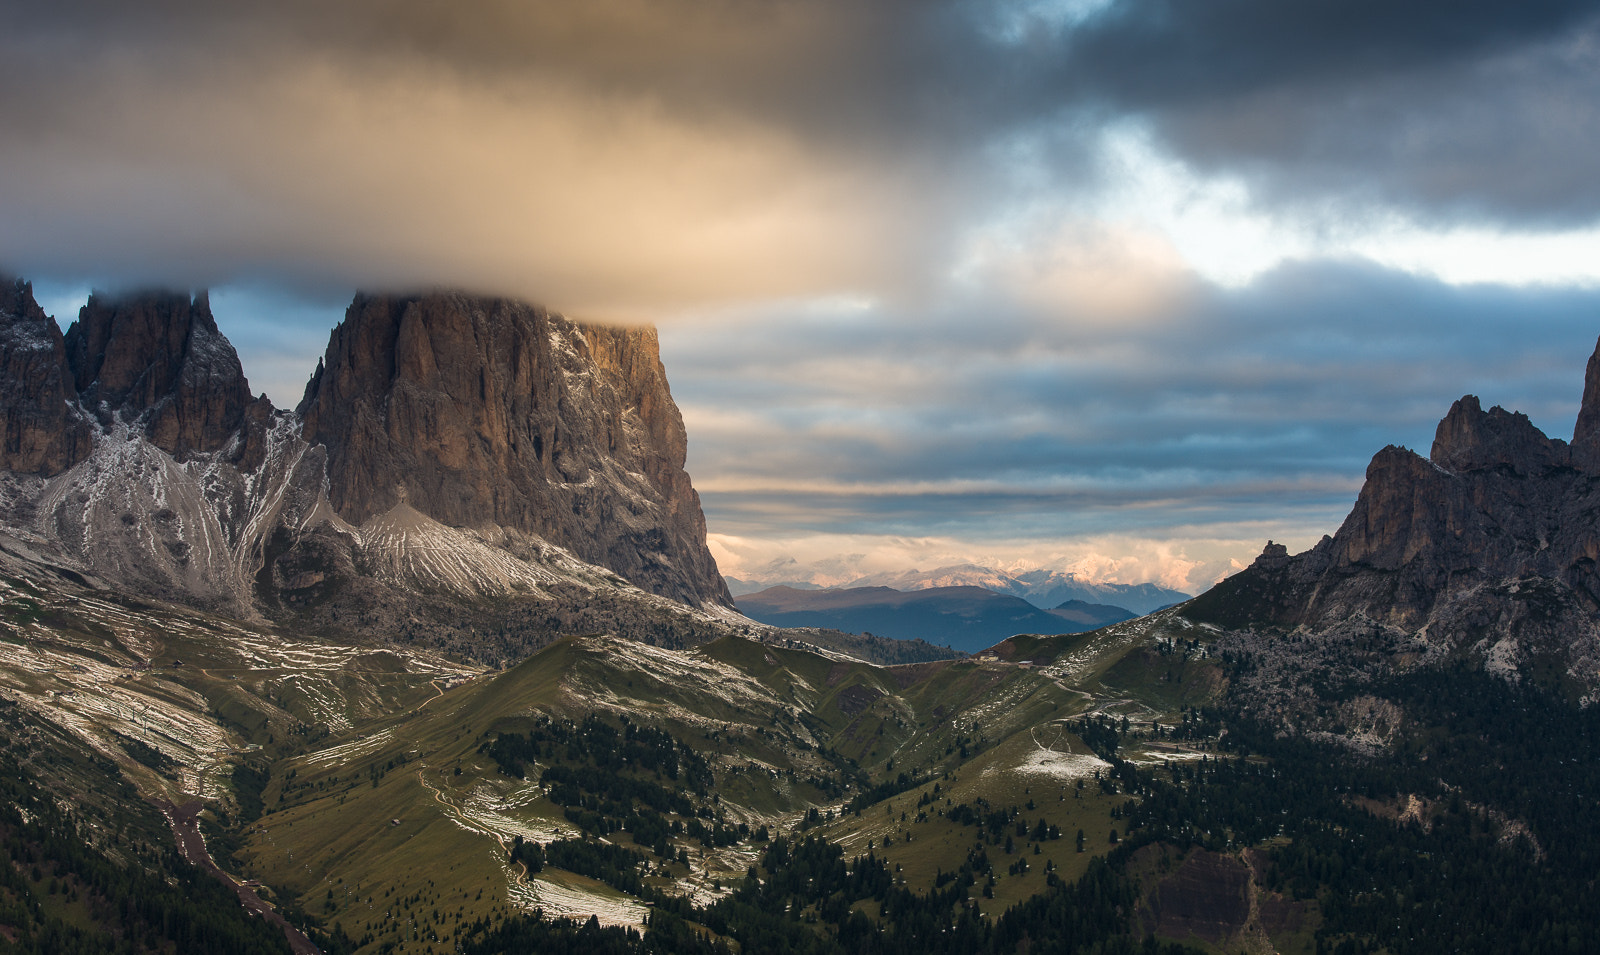 Photograph Morning light over Sassolungo by Hans Kruse on 500px